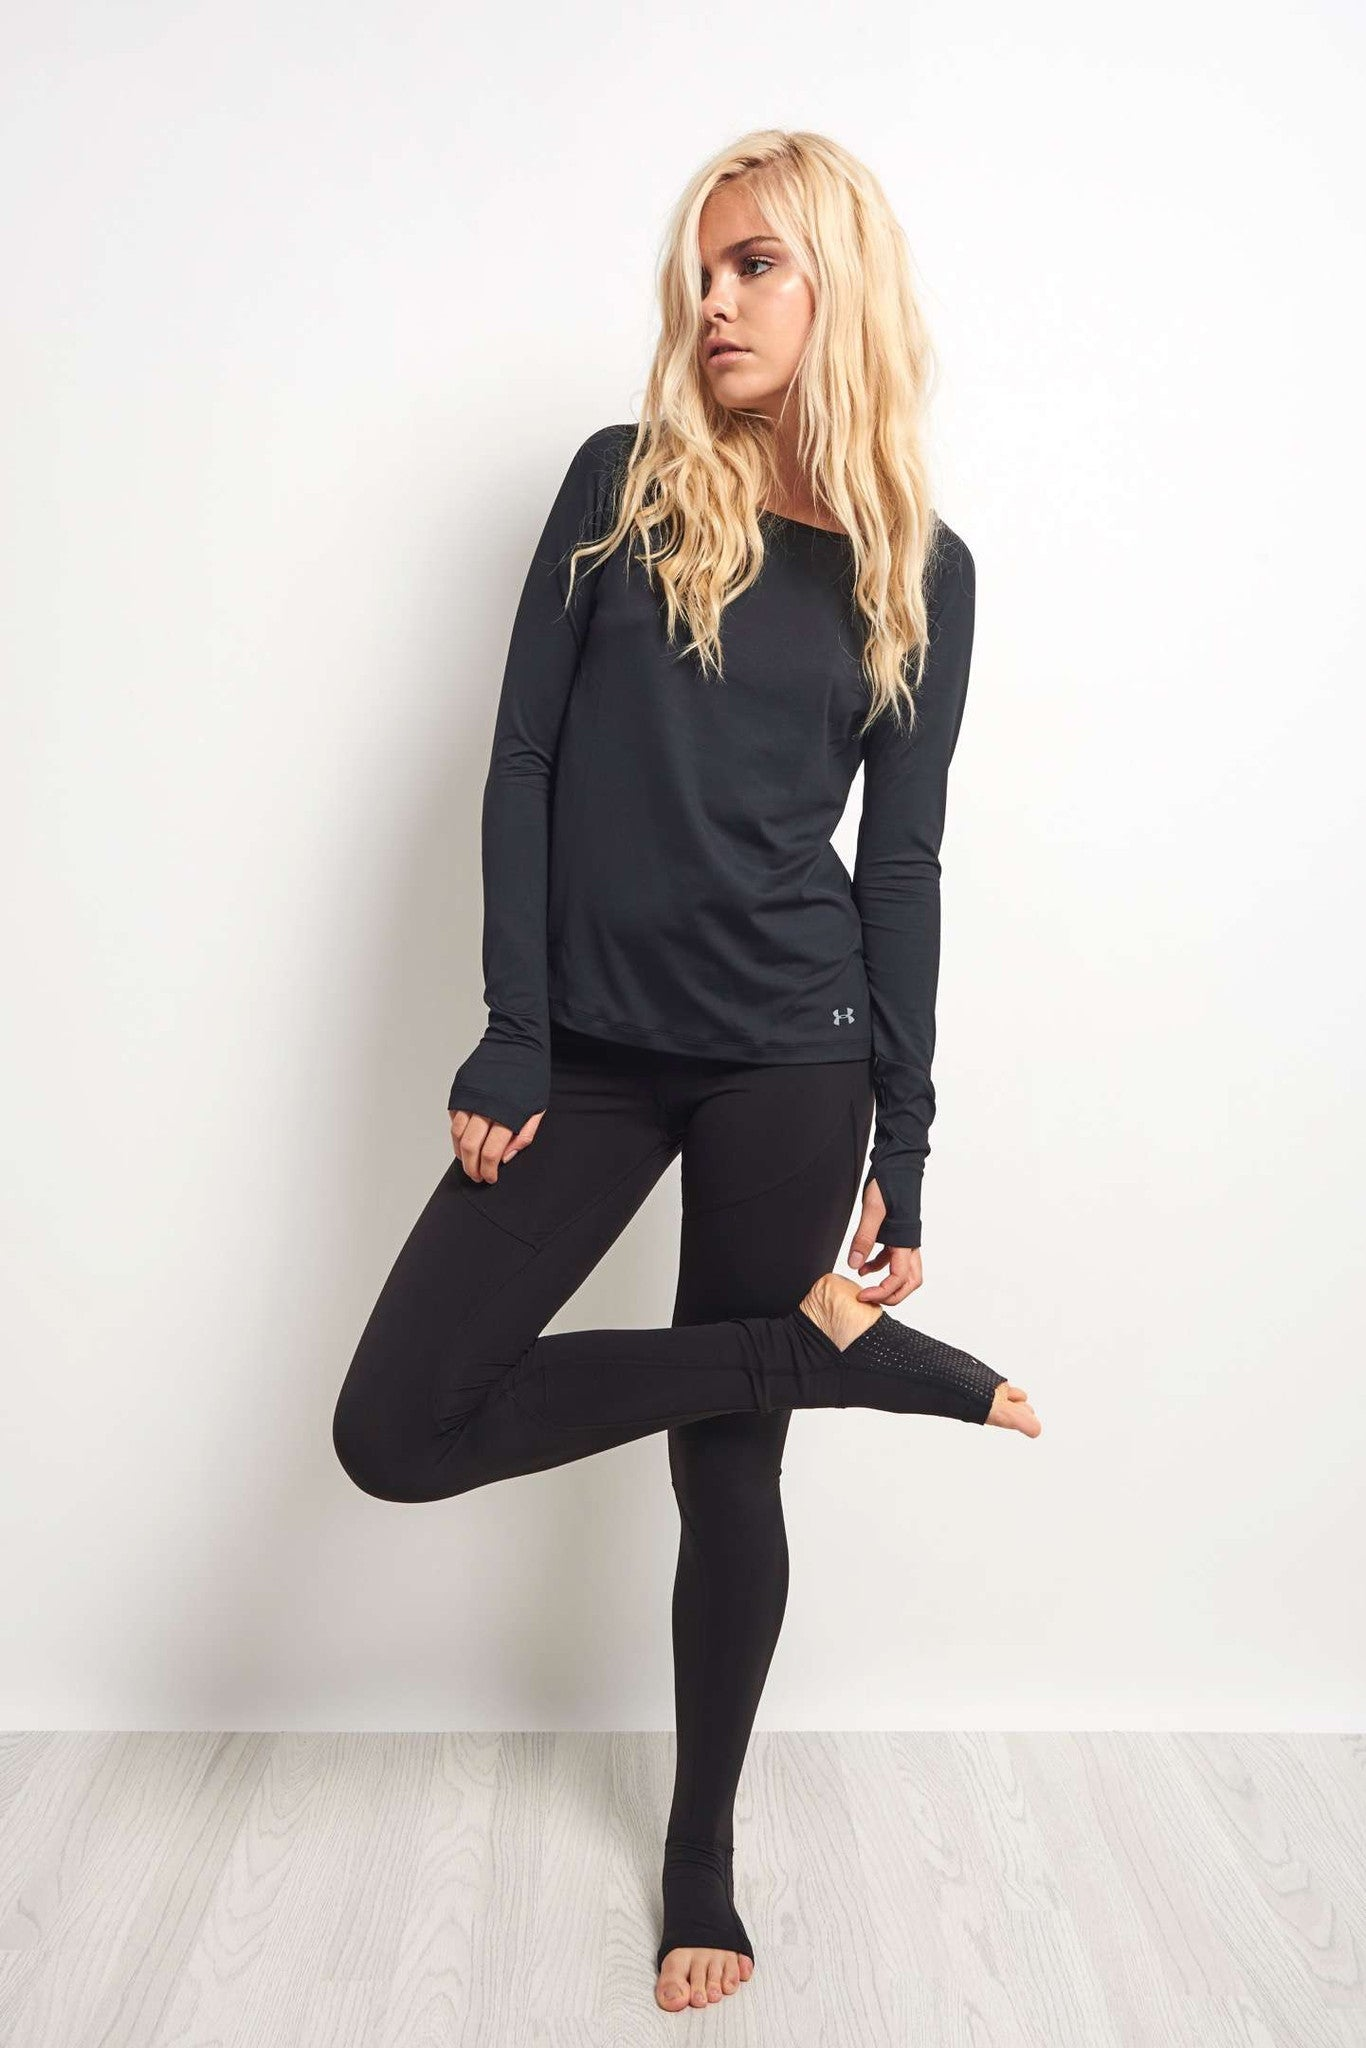 Under Armour Swing Keyhole Long Sleeve Top Black image 4 - The Sports Edit